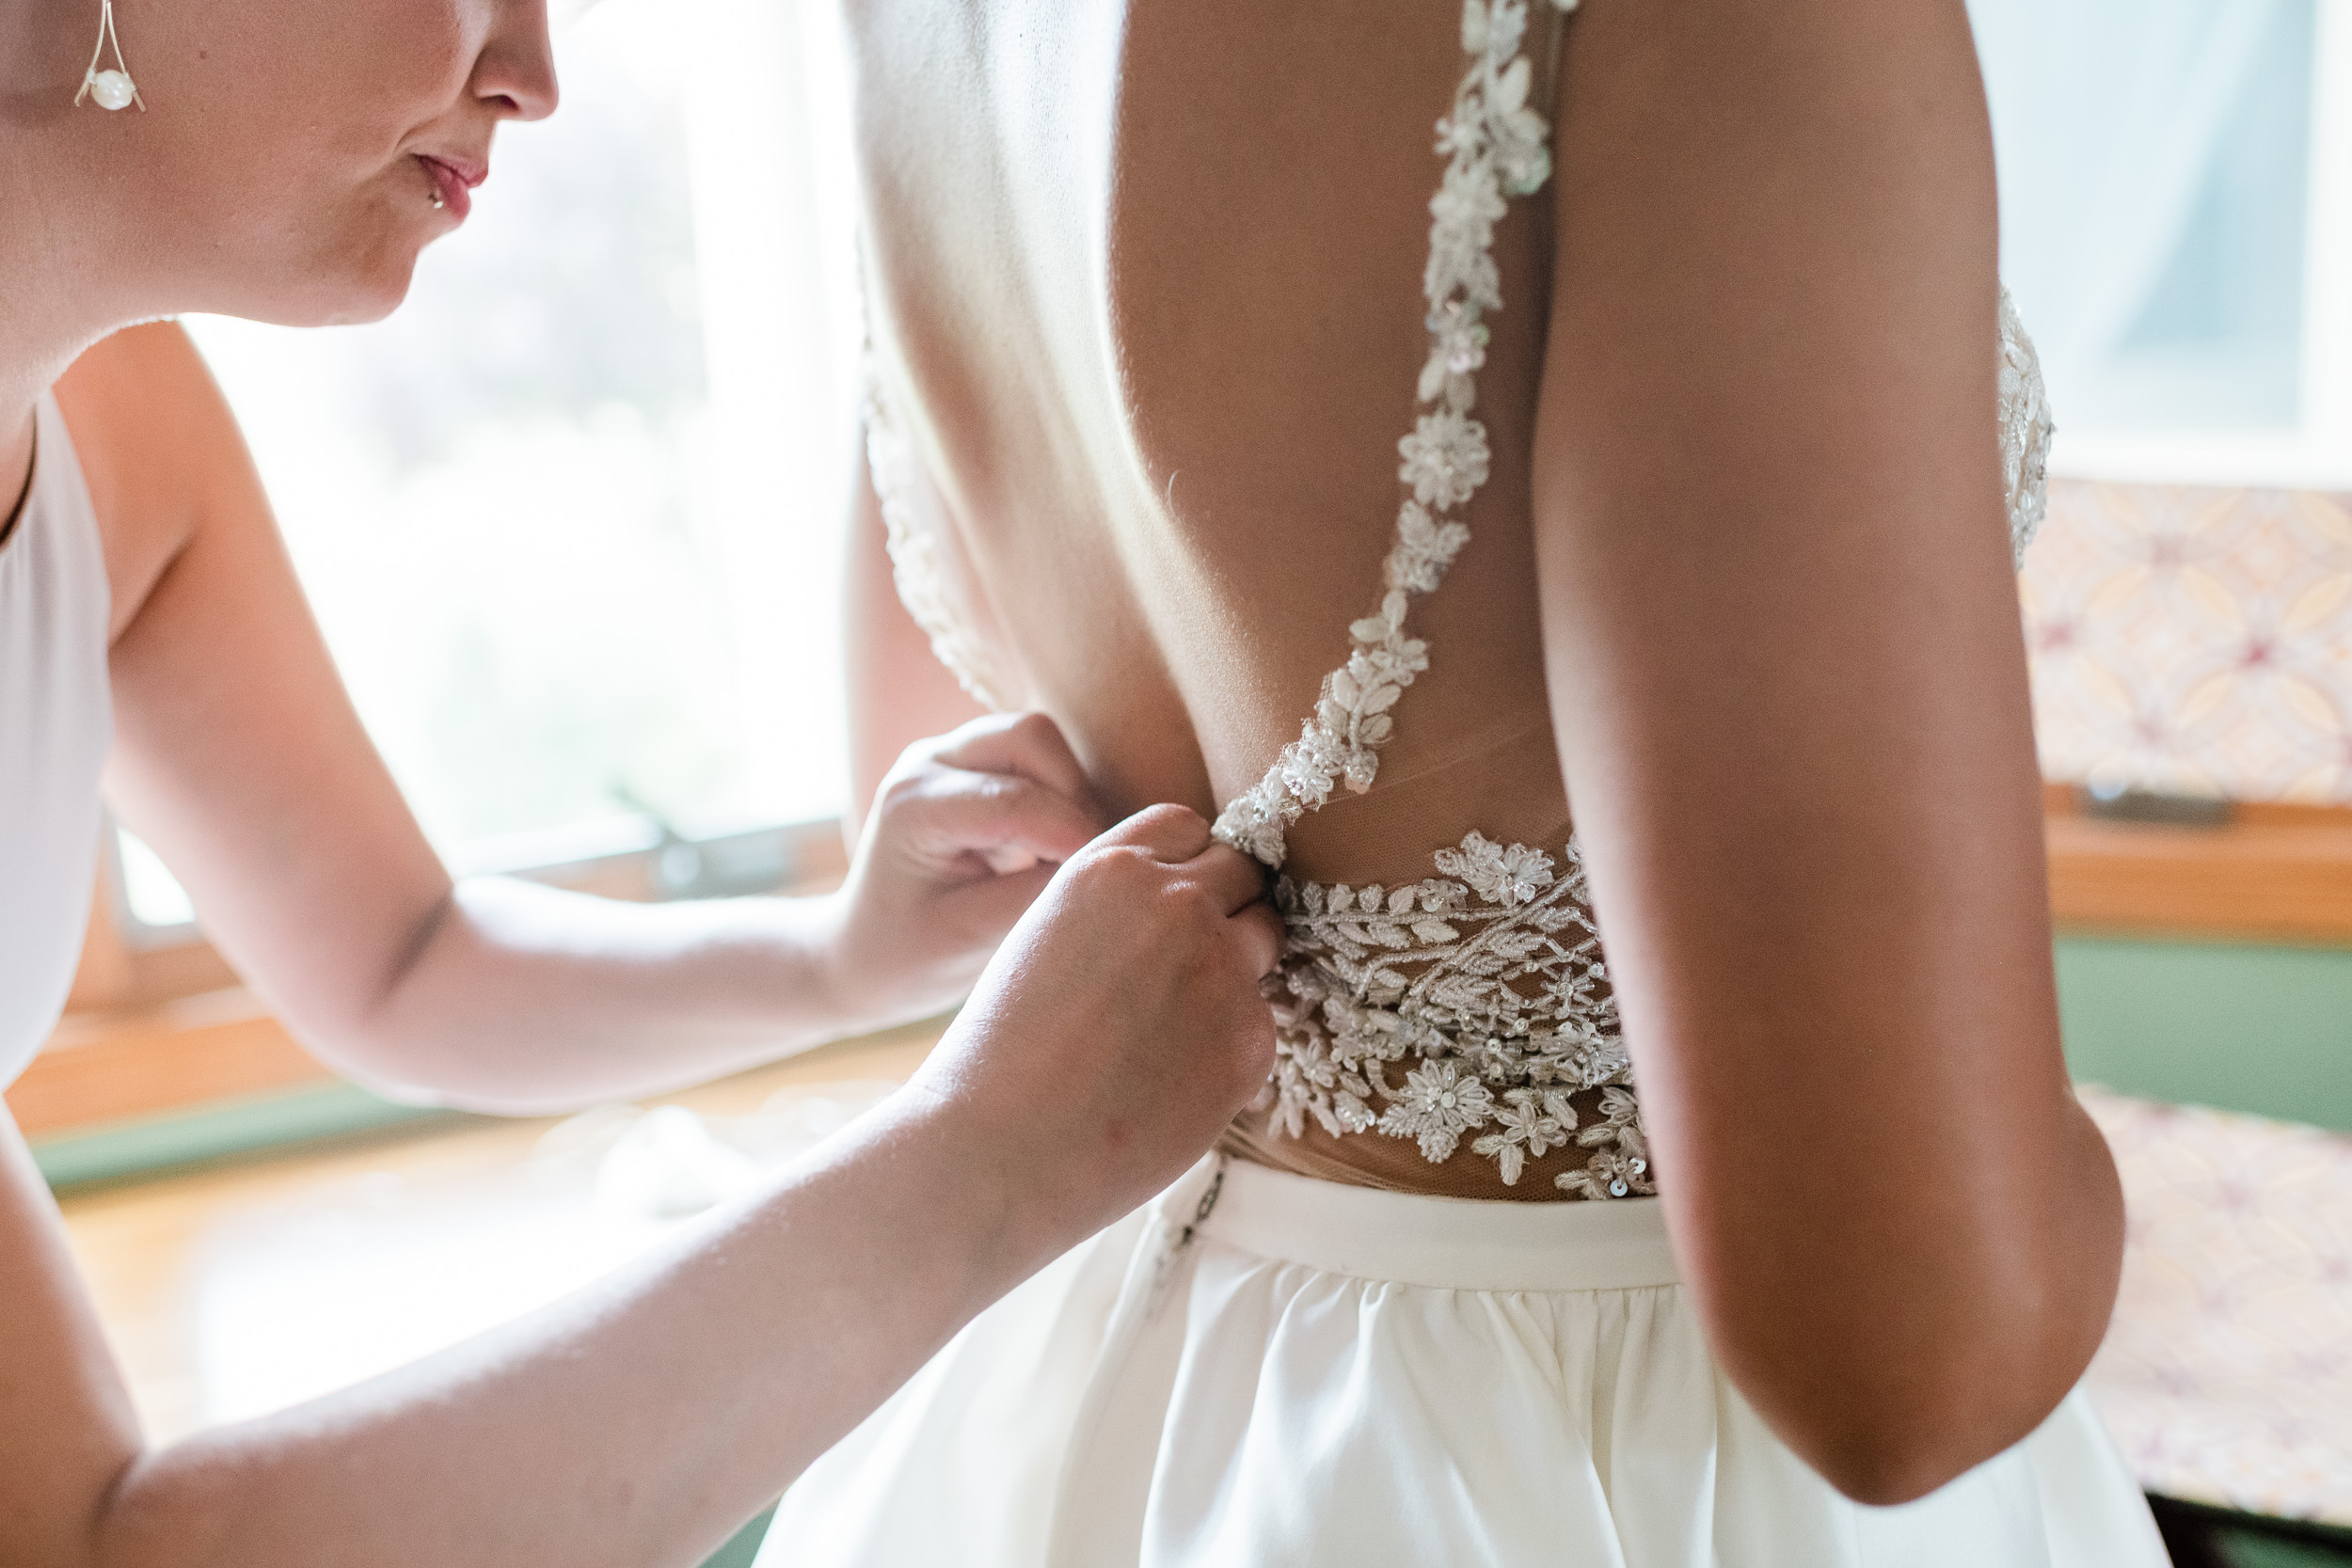 Bridesmaid buttoning up bride's dress